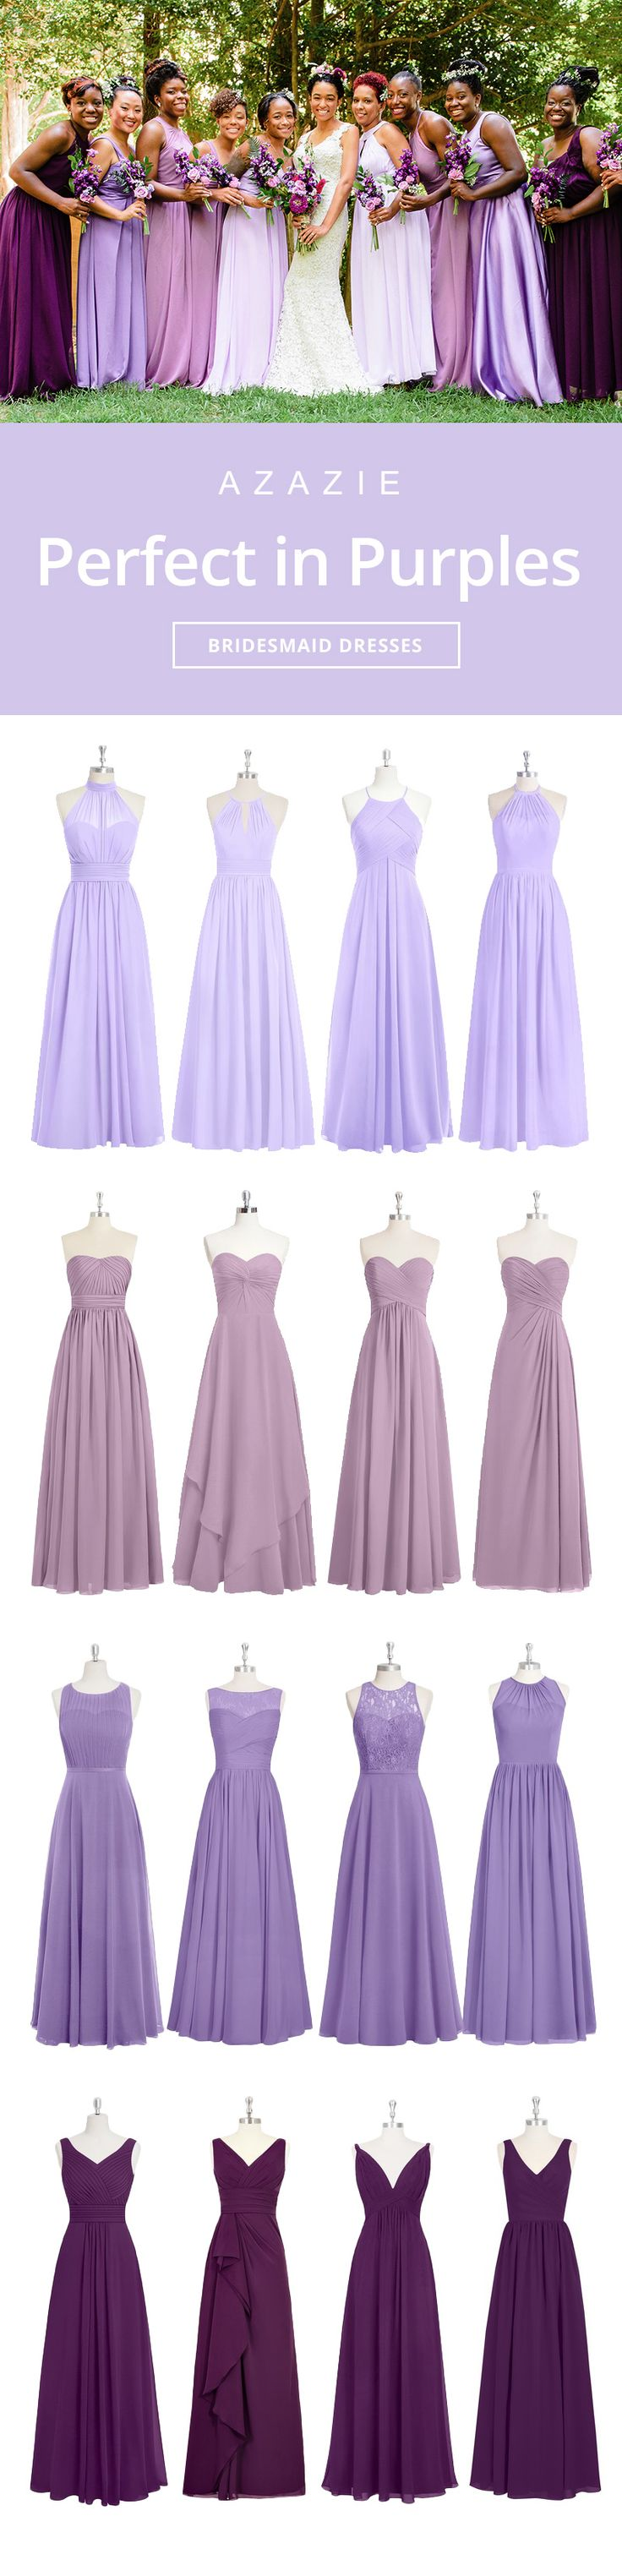 Mixing-and-match your bridesmaids in gorgeous purples. Wedding tip: Order color swatches to see the colors in our various fabrics for easy wedding planning!  | Photos courtesy of marlonming.com